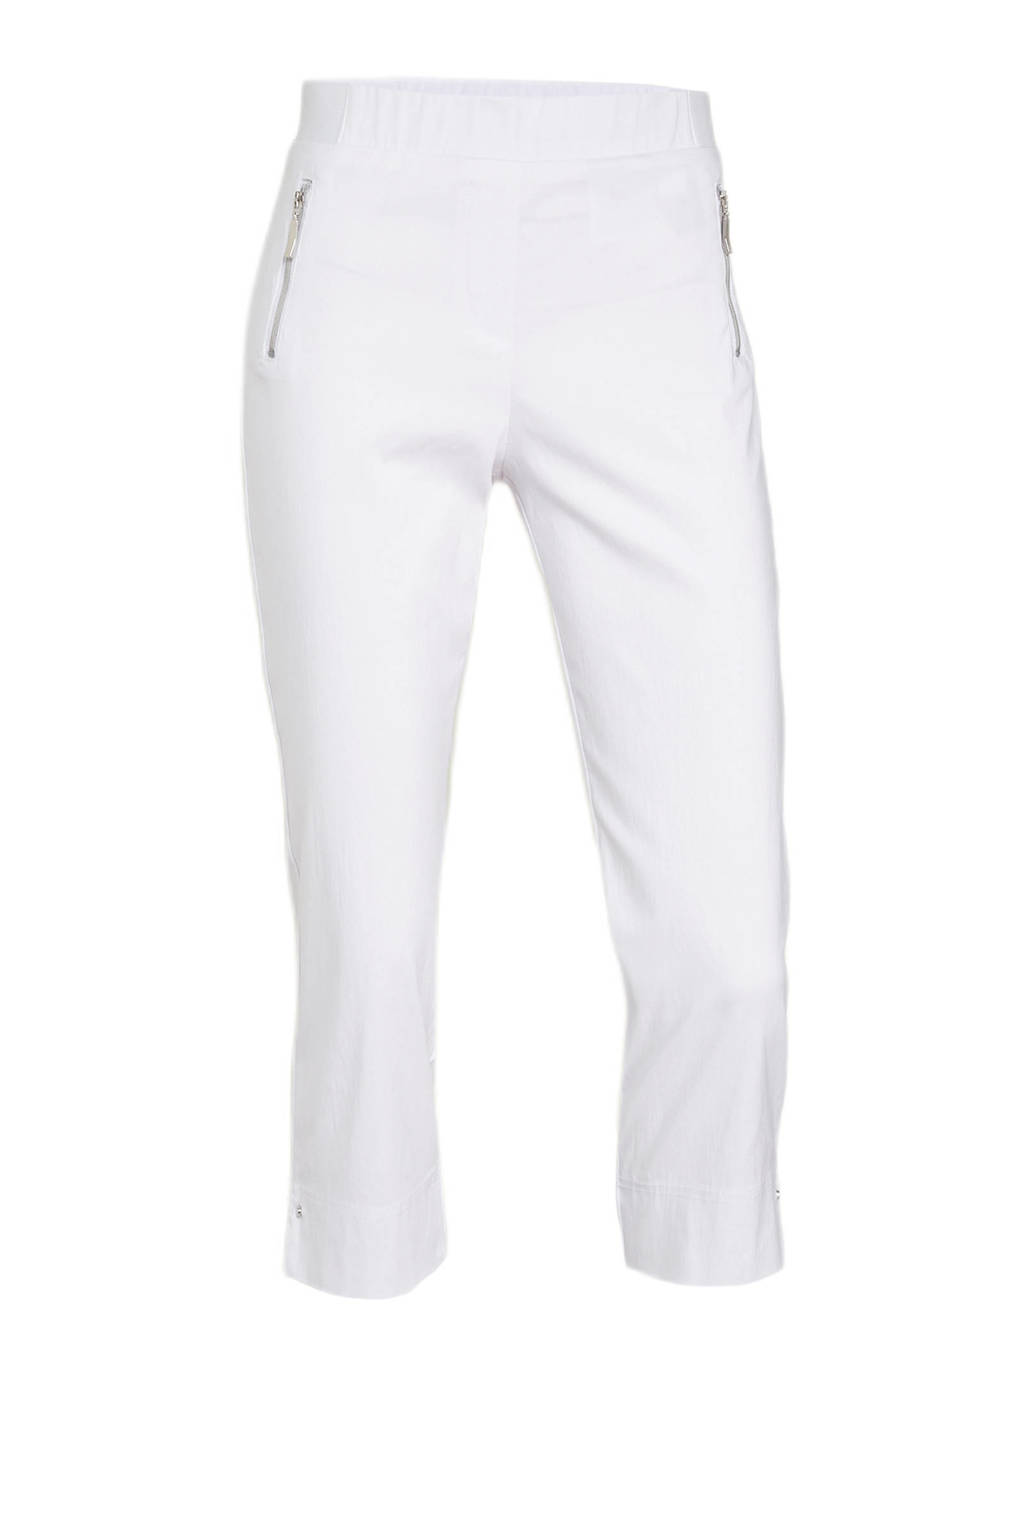 C&A Canda Premium cropped straight fit tregging wit, Wit